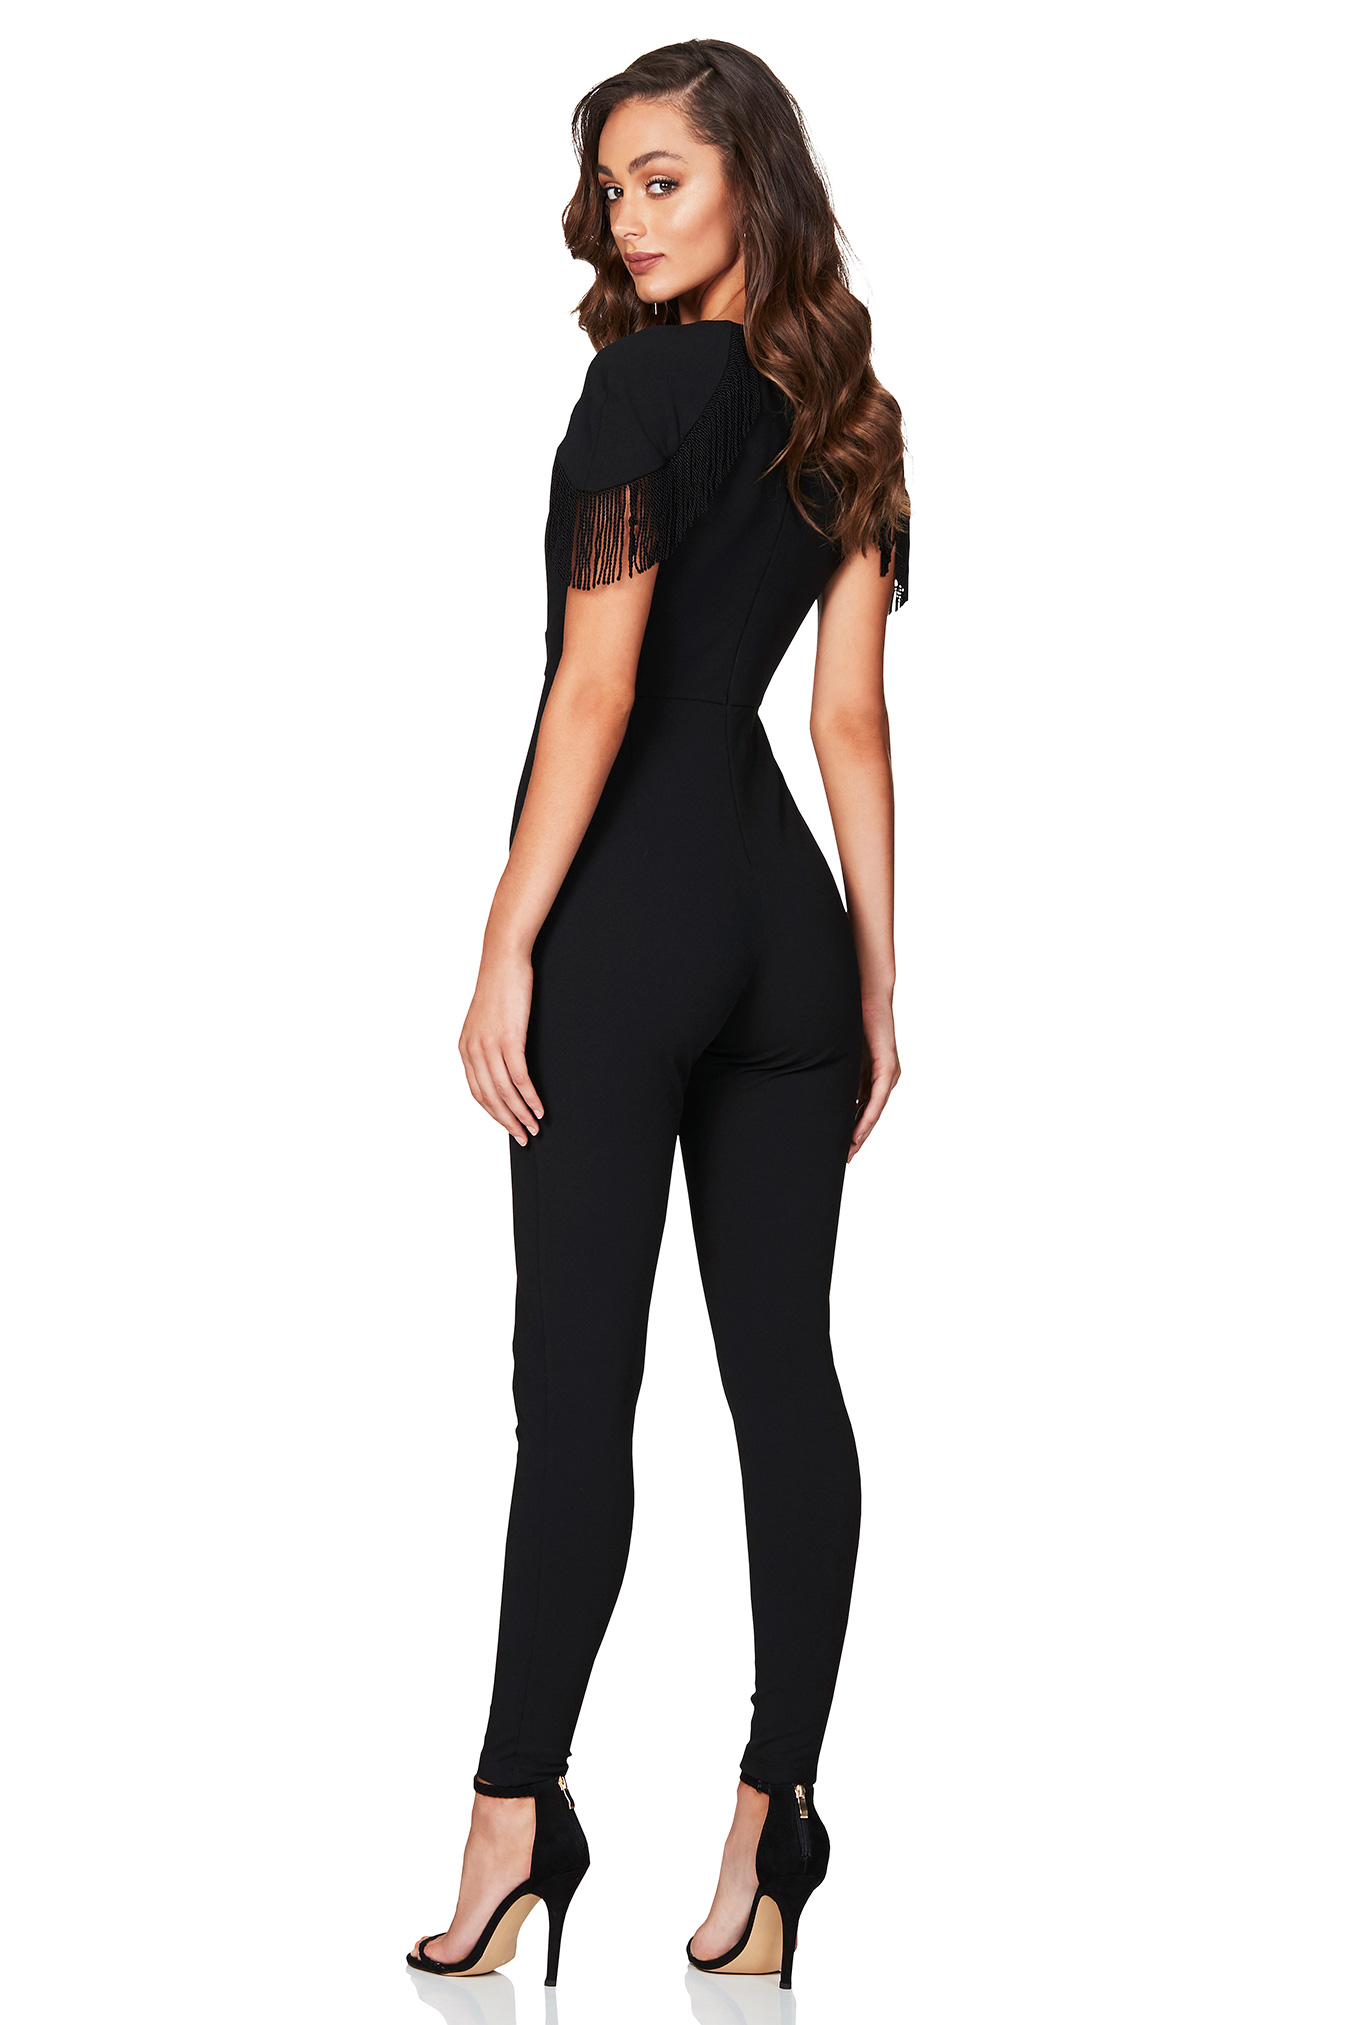 b726111d32d MENDEZ JUMPSUIT   Buy on Sale Now